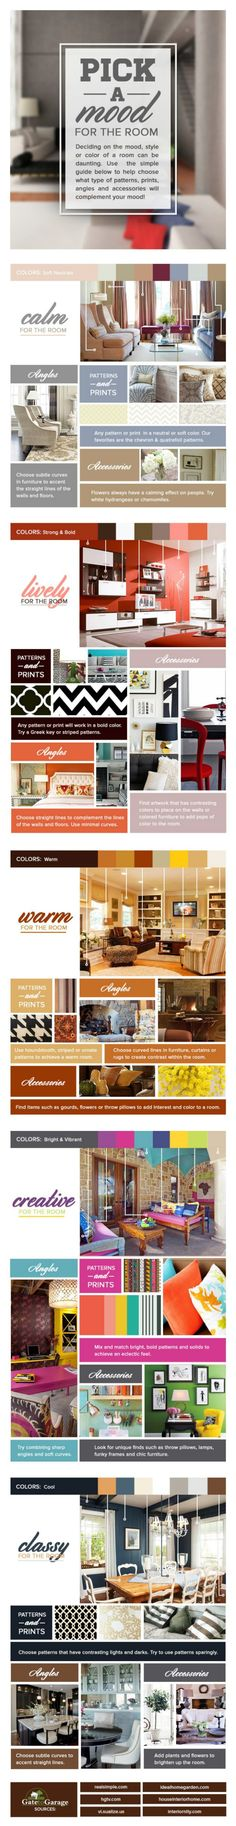 3. Colors and Moods Infographic - 50 Amazingly Clever Cheat Sheets To Simplify Home Decorating Projects